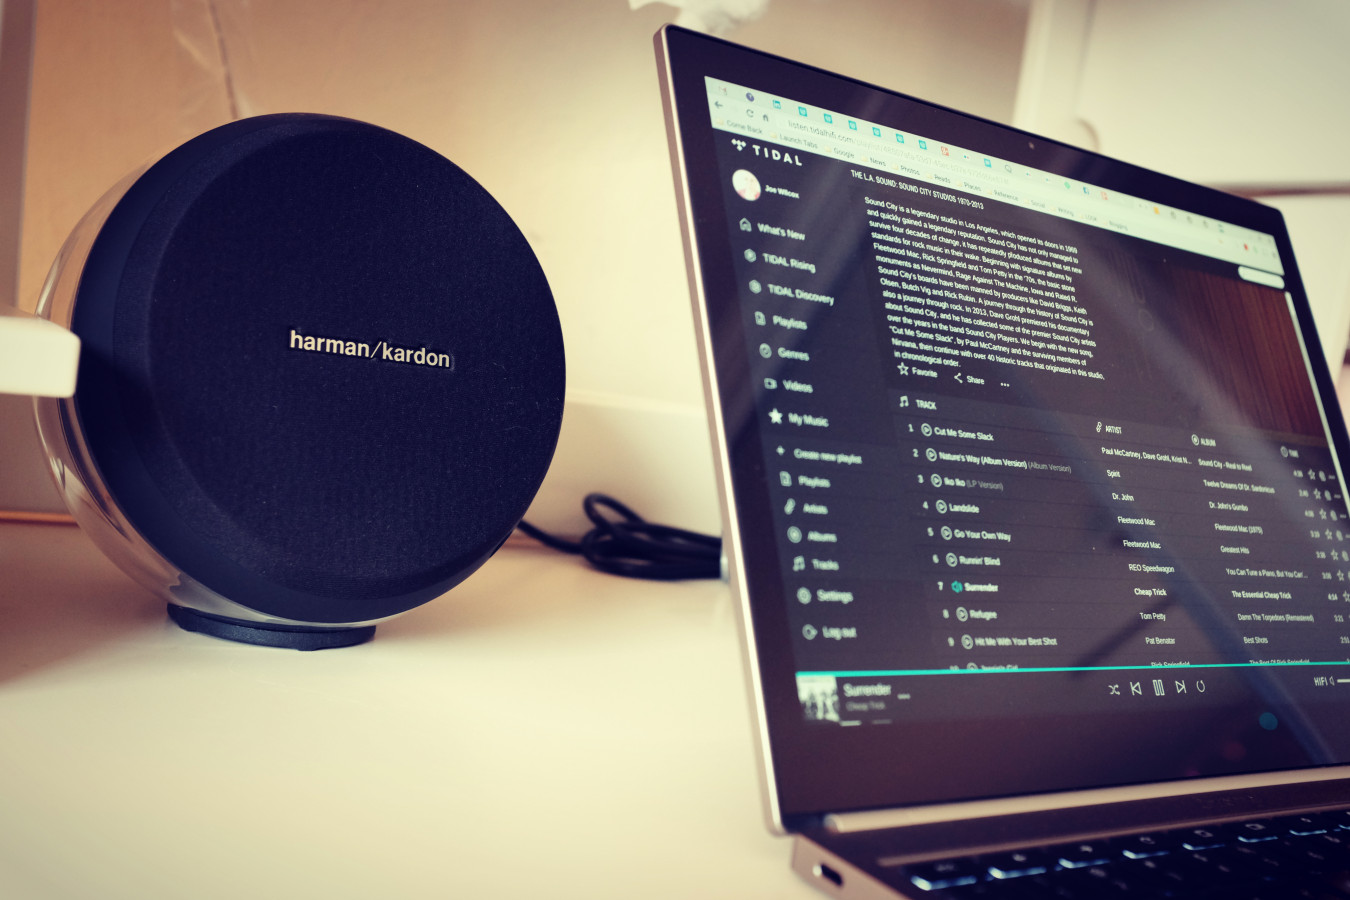 Harman Kardon Nova and Chromebook Pixel Jennifer LS